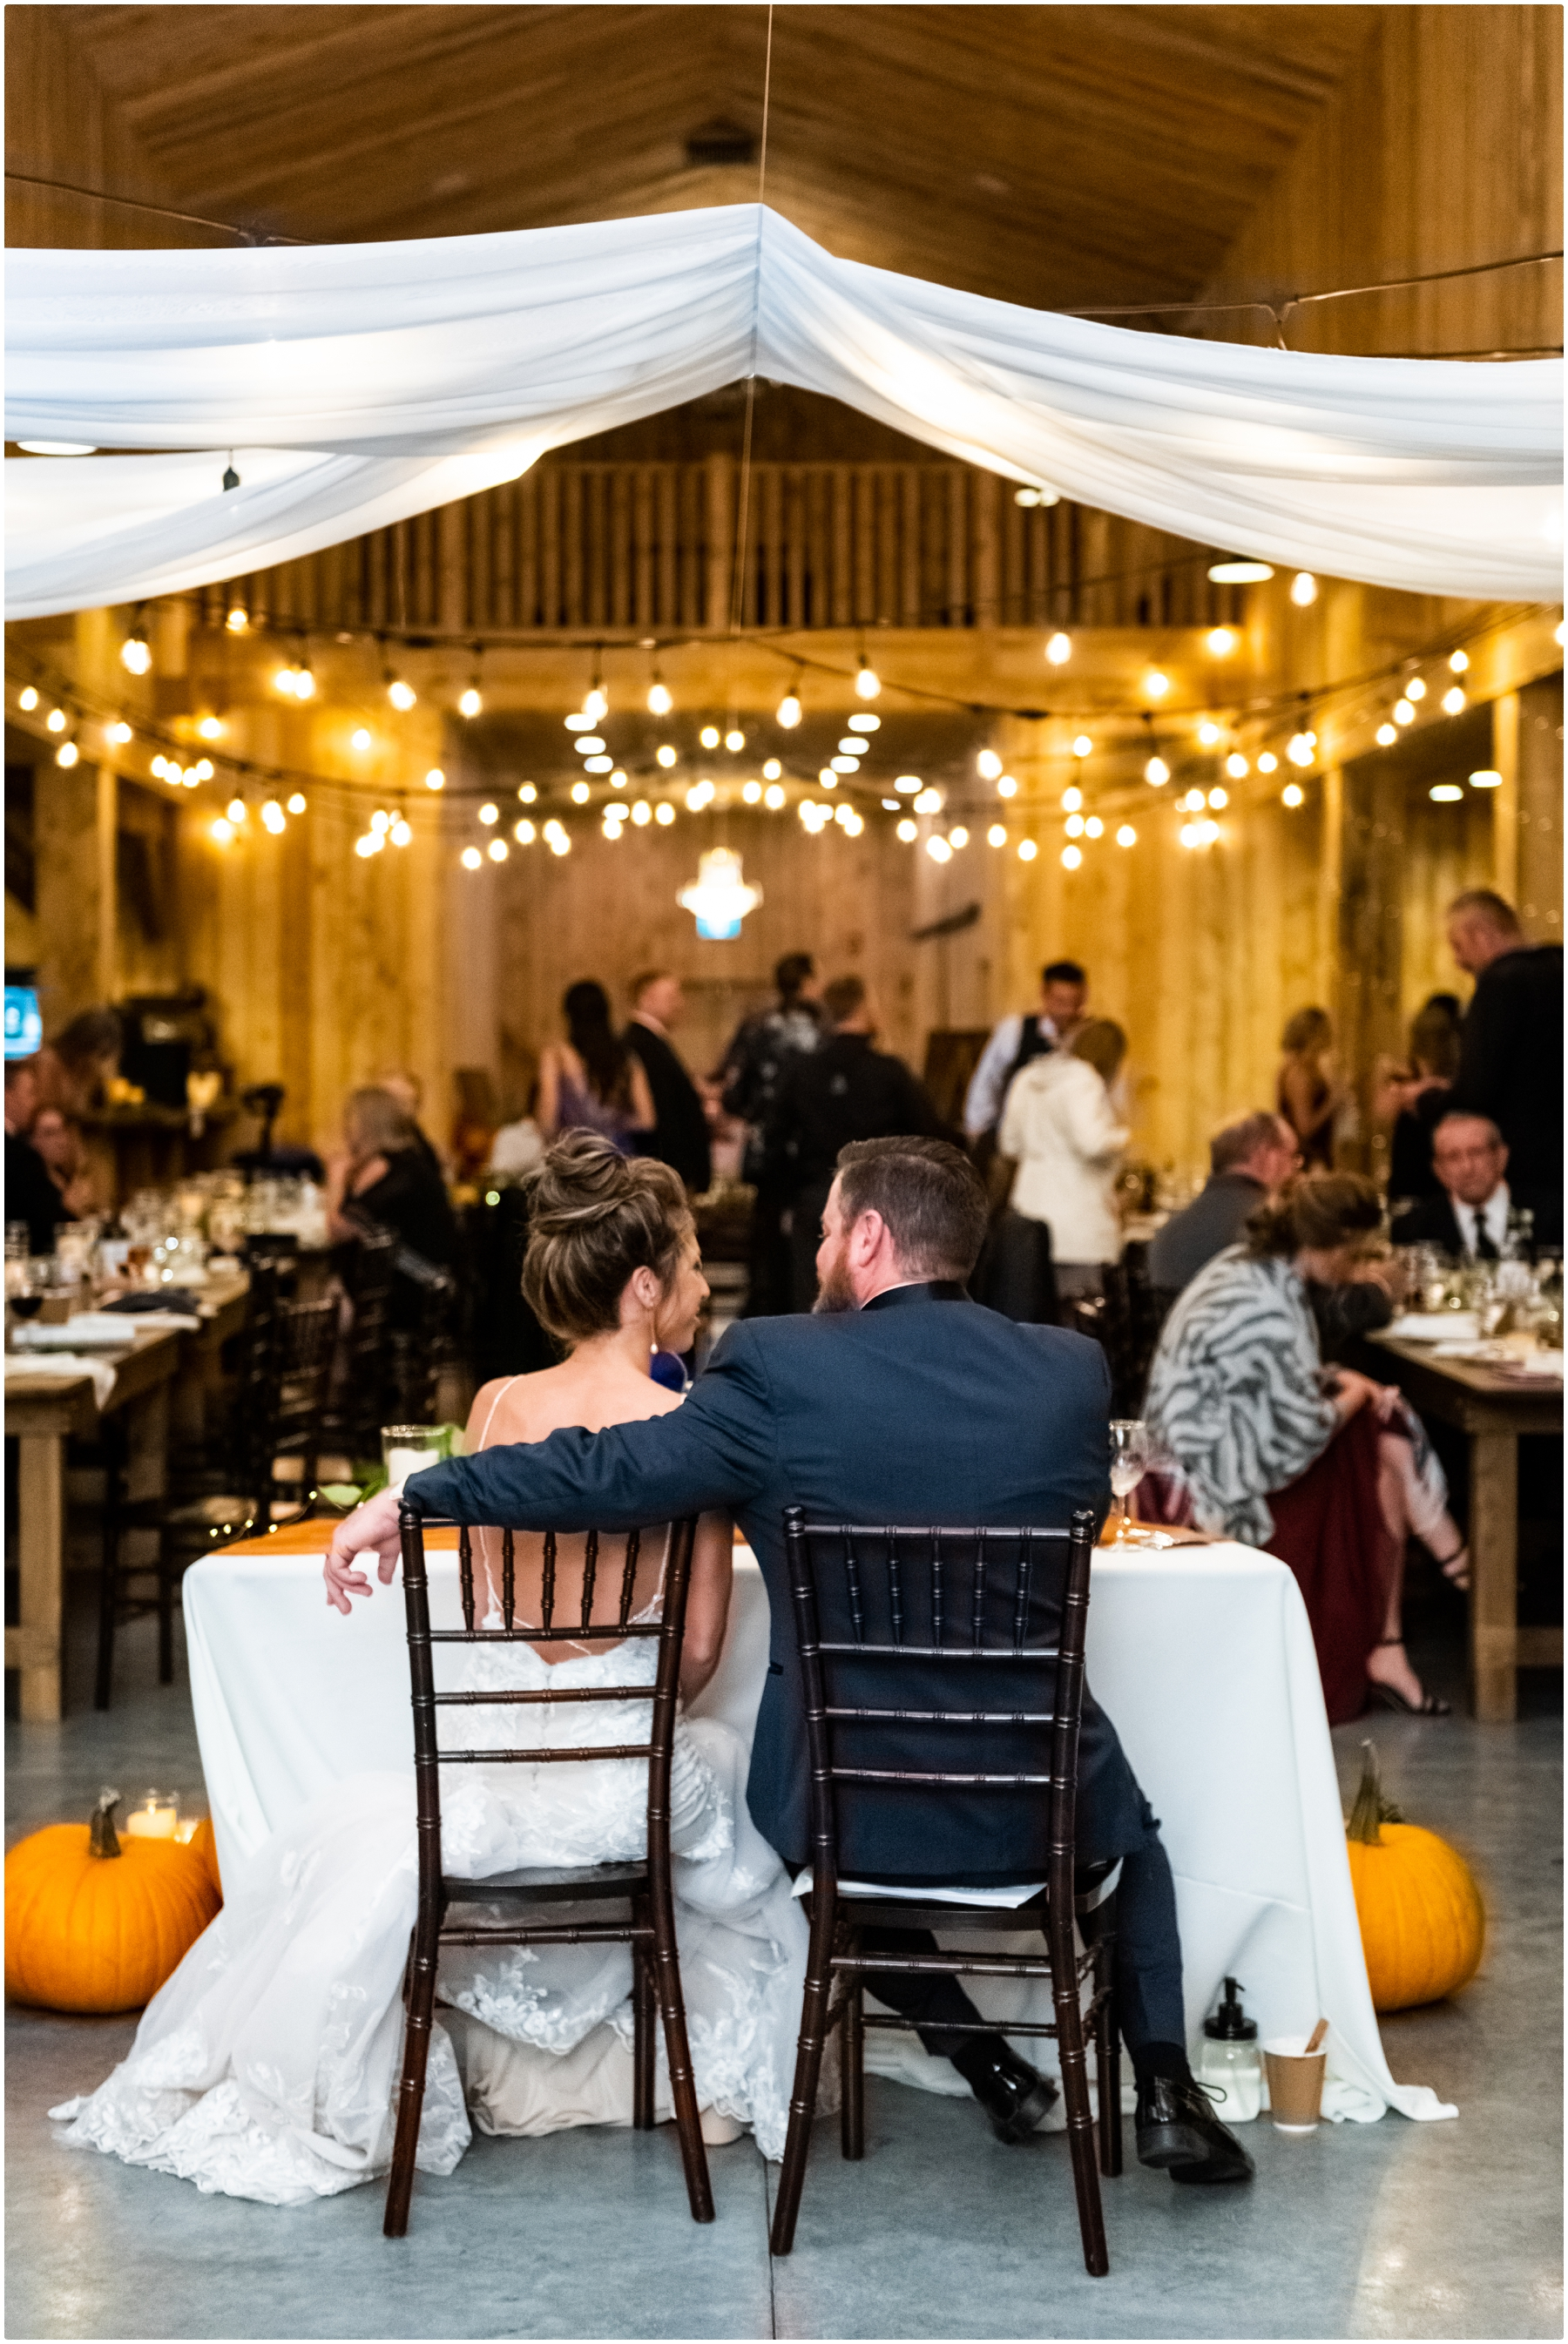 Sweet Haven Barn Wedding Reception